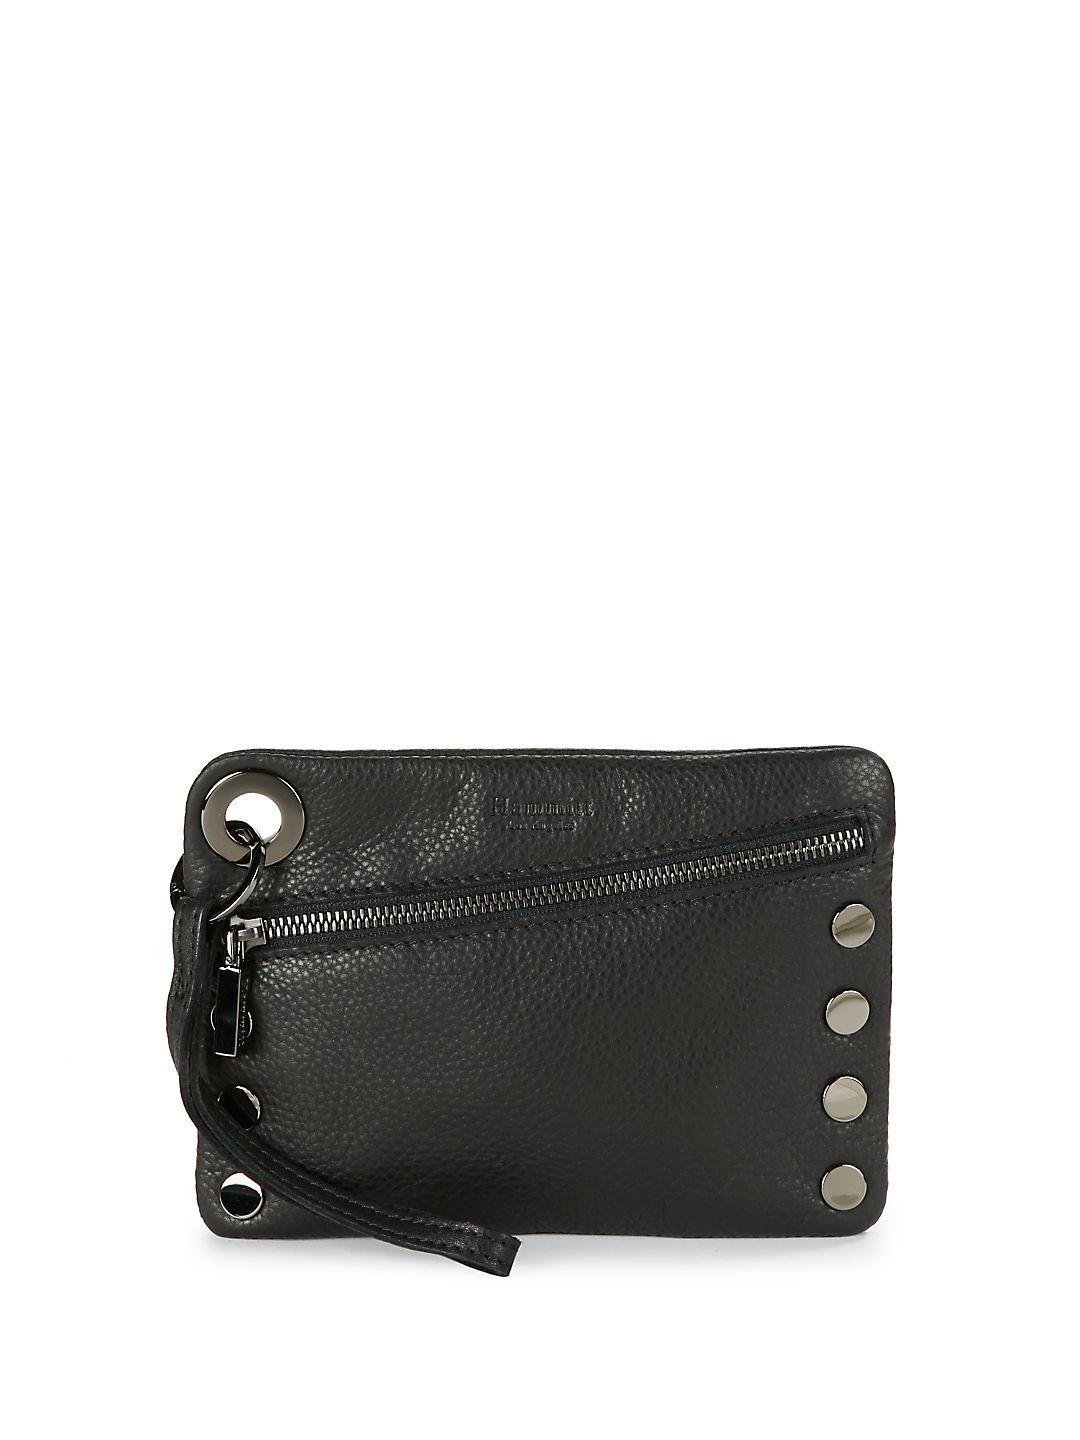 Nash Leather Crossbody Bag